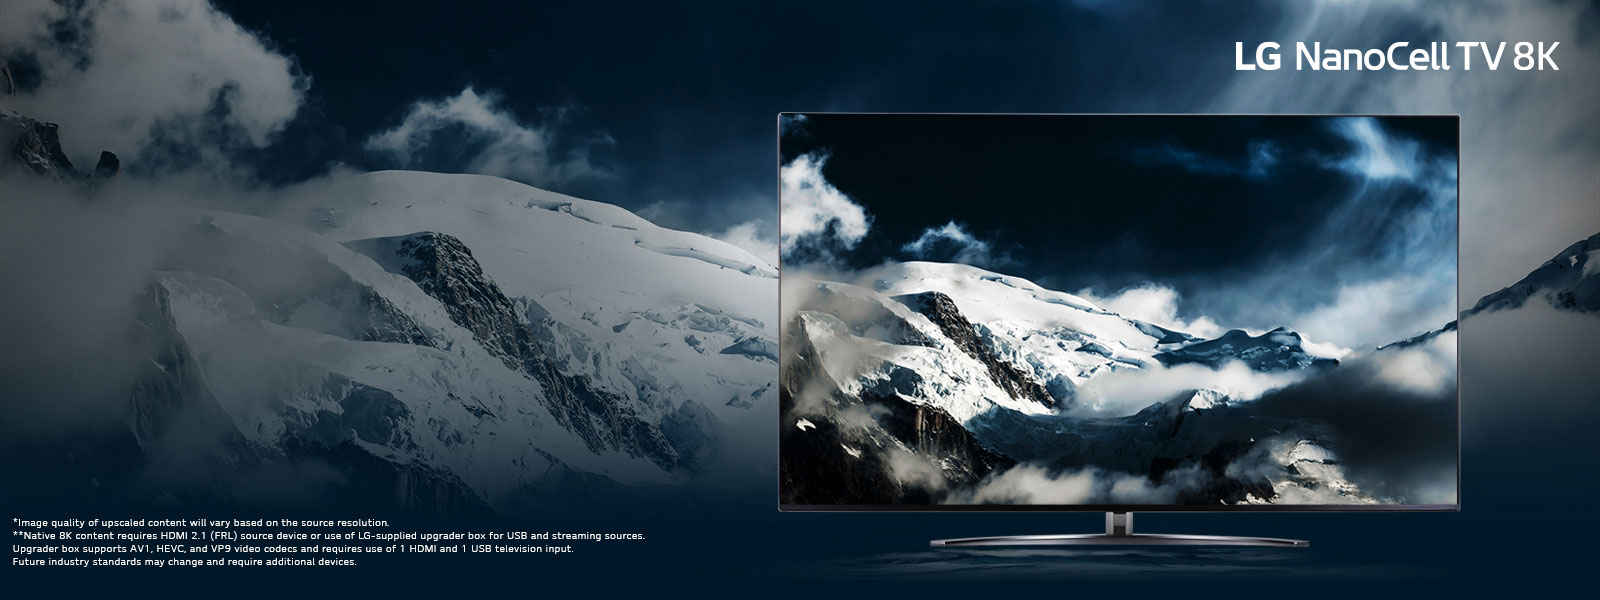 The Future of LED TV is 8K. - tv on mountainous landscape background